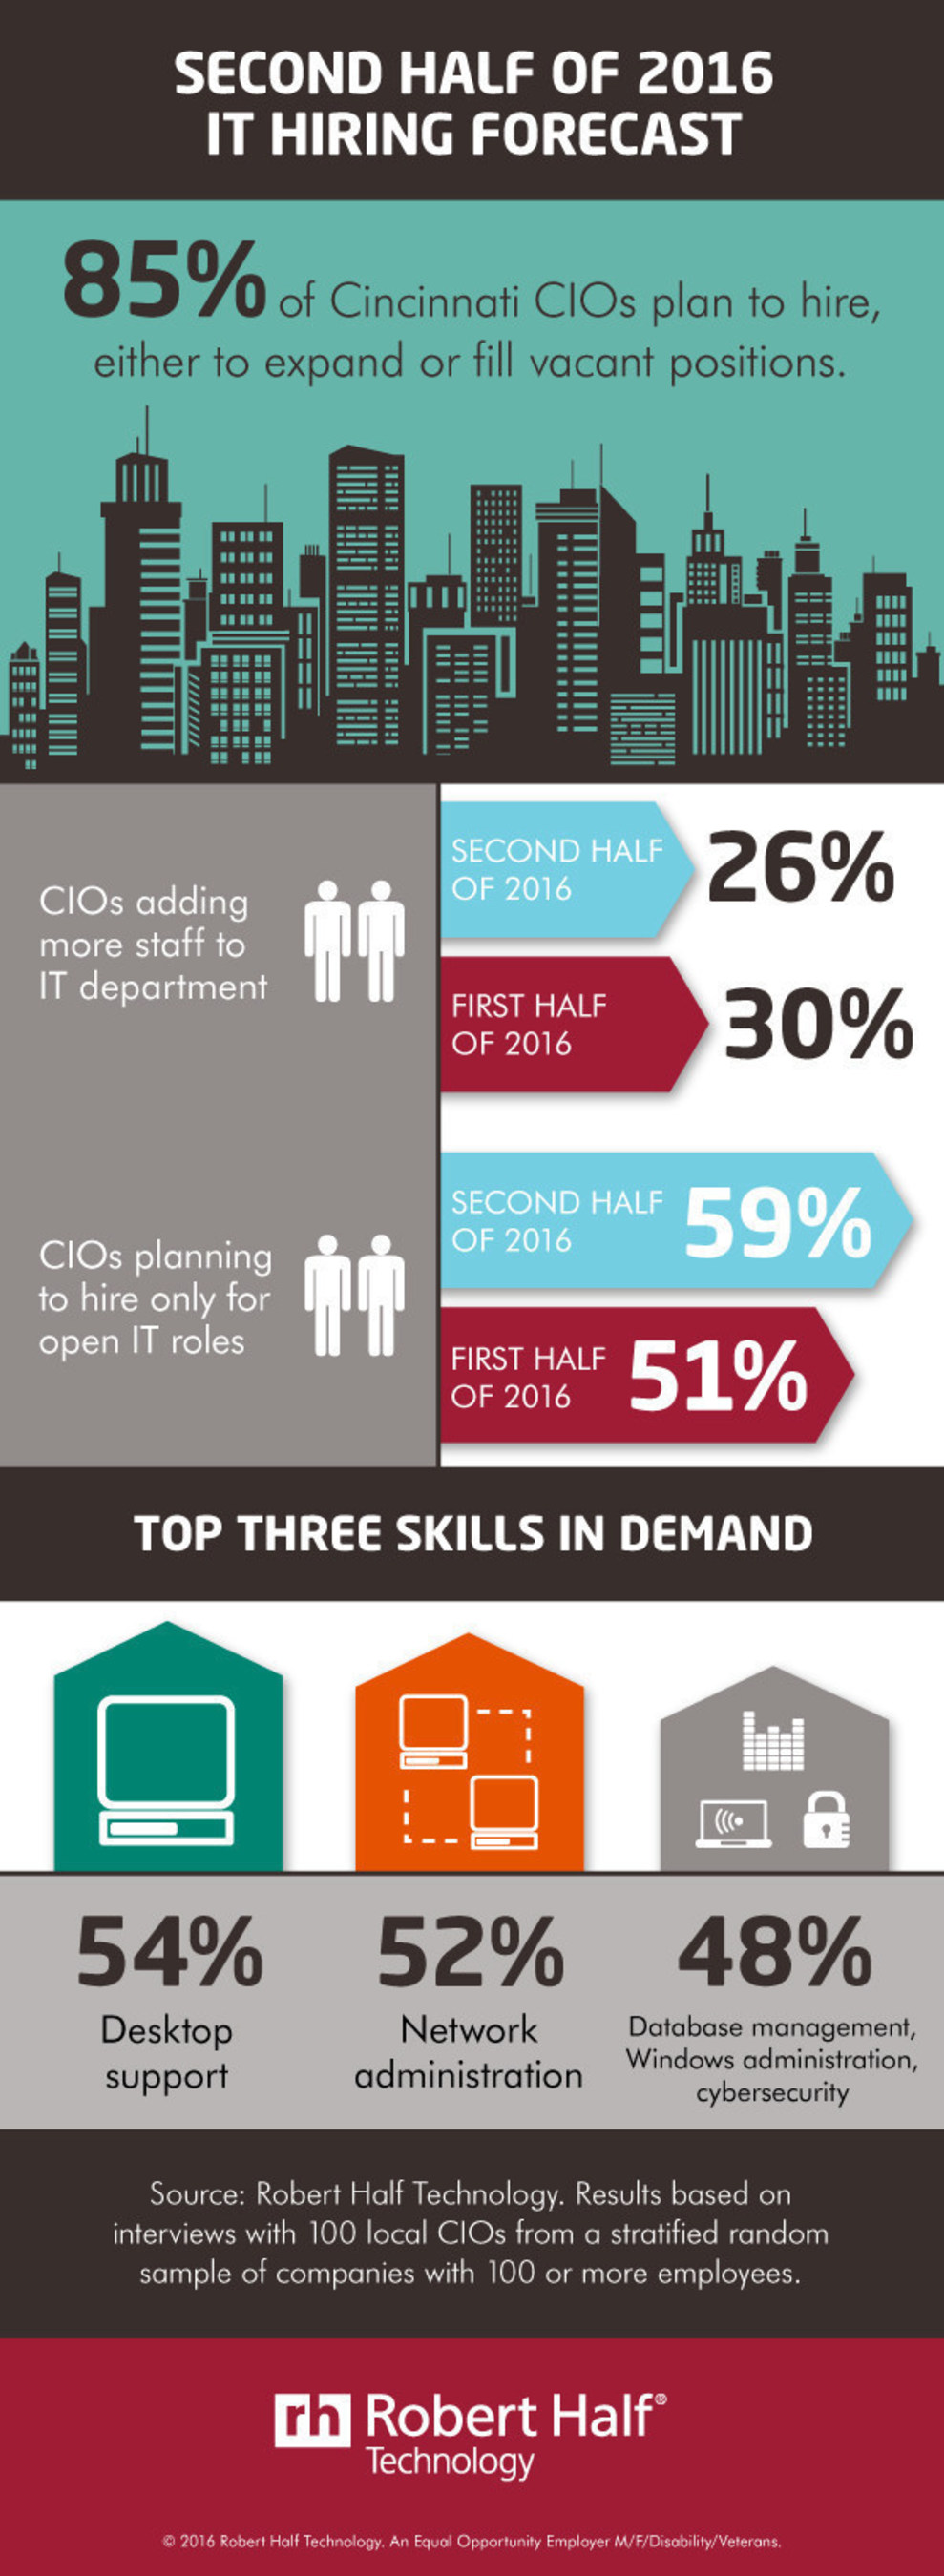 Cincinnati CIOs Reveal Hiring Plans For Second Half Of 2016